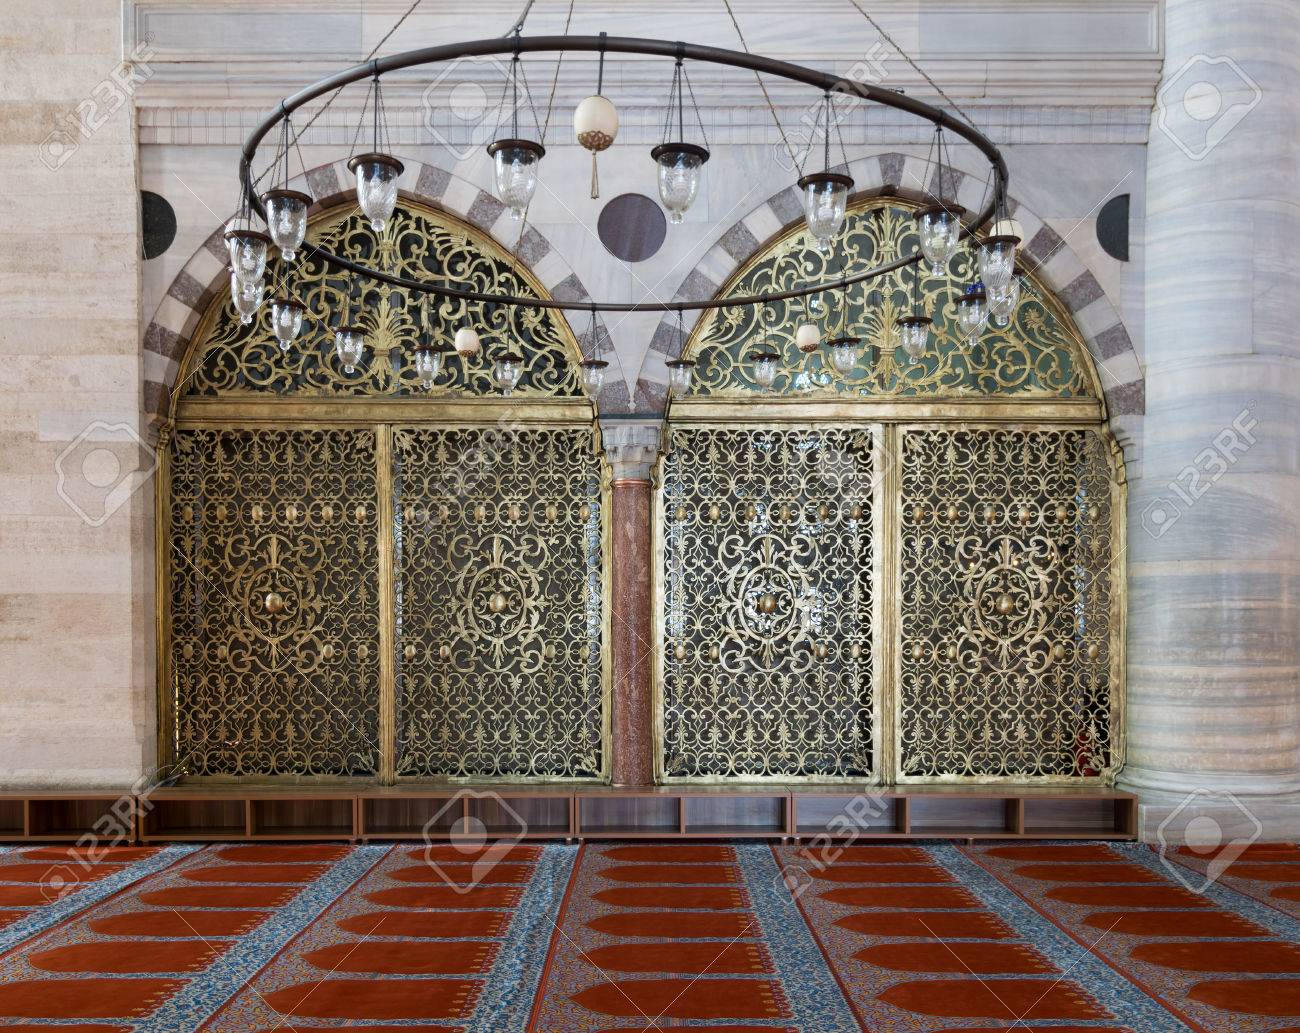 Interior Shot Of Two Arched Ornate Engraved Golden Doors, Big Chandelier  Over Marble Wall With